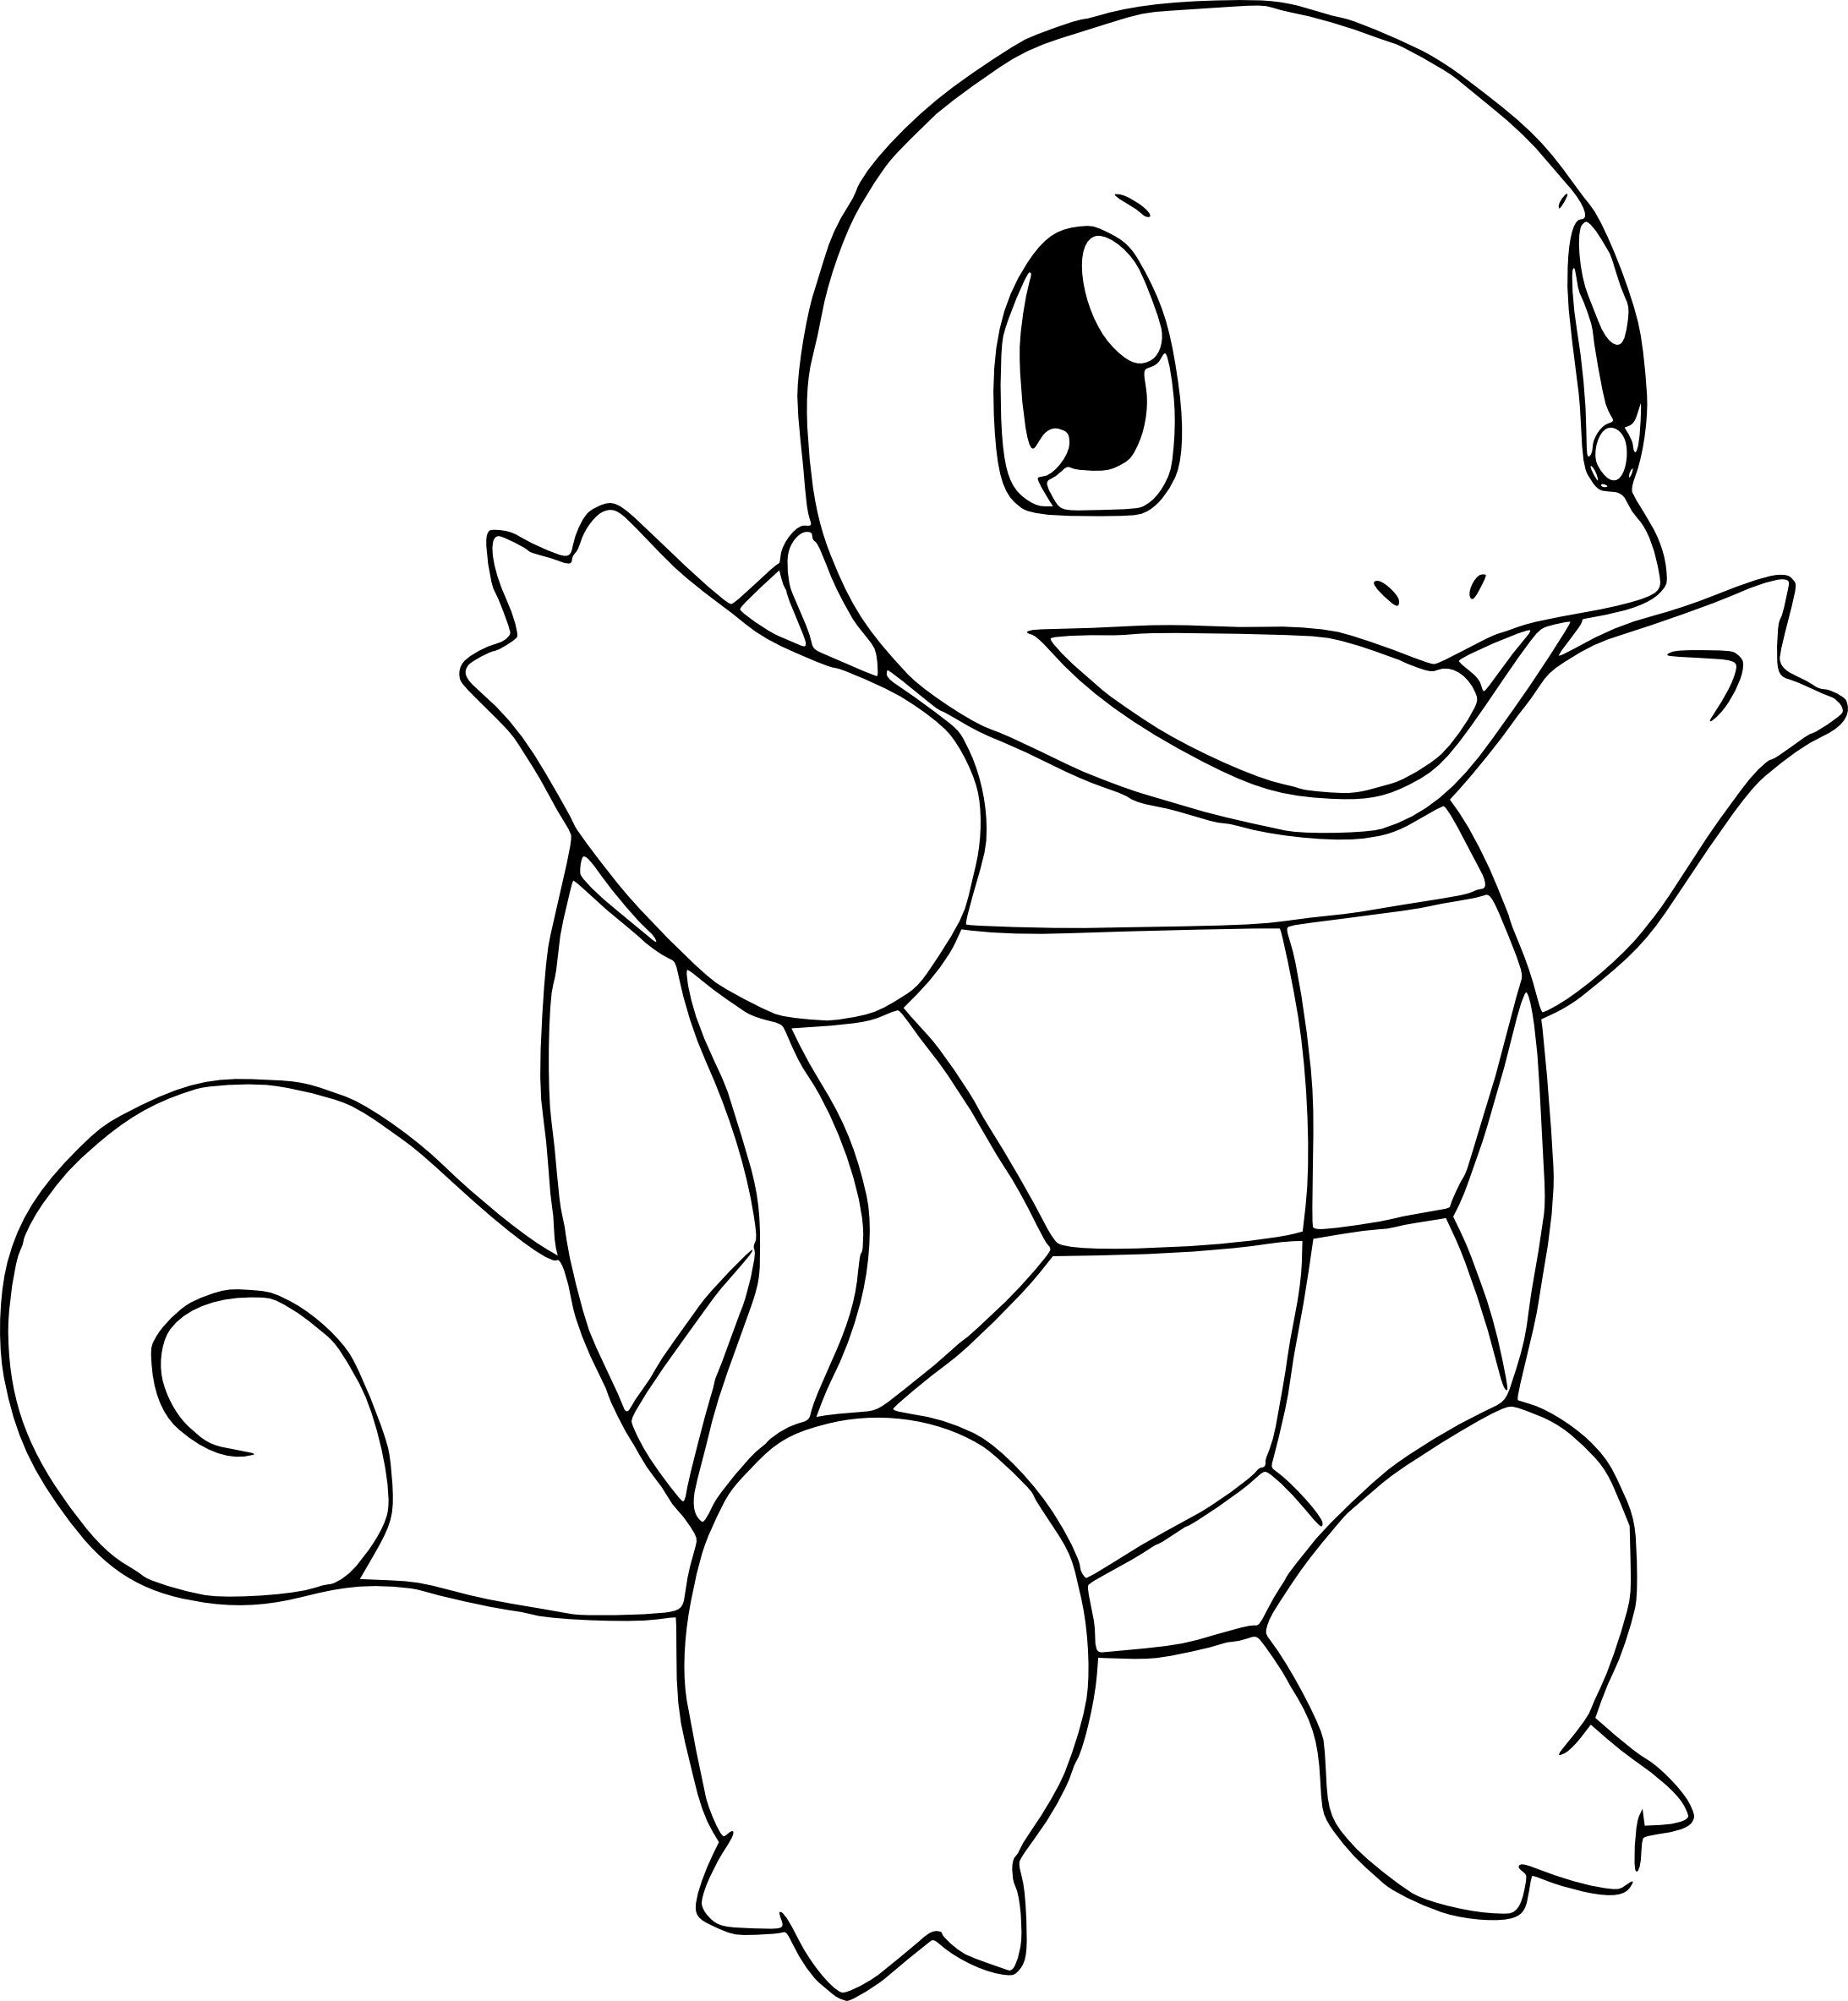 Pokemon Squirtle Coloring Page Pokemon Coloring Pokemon Coloring Pages Pokemon Sketch